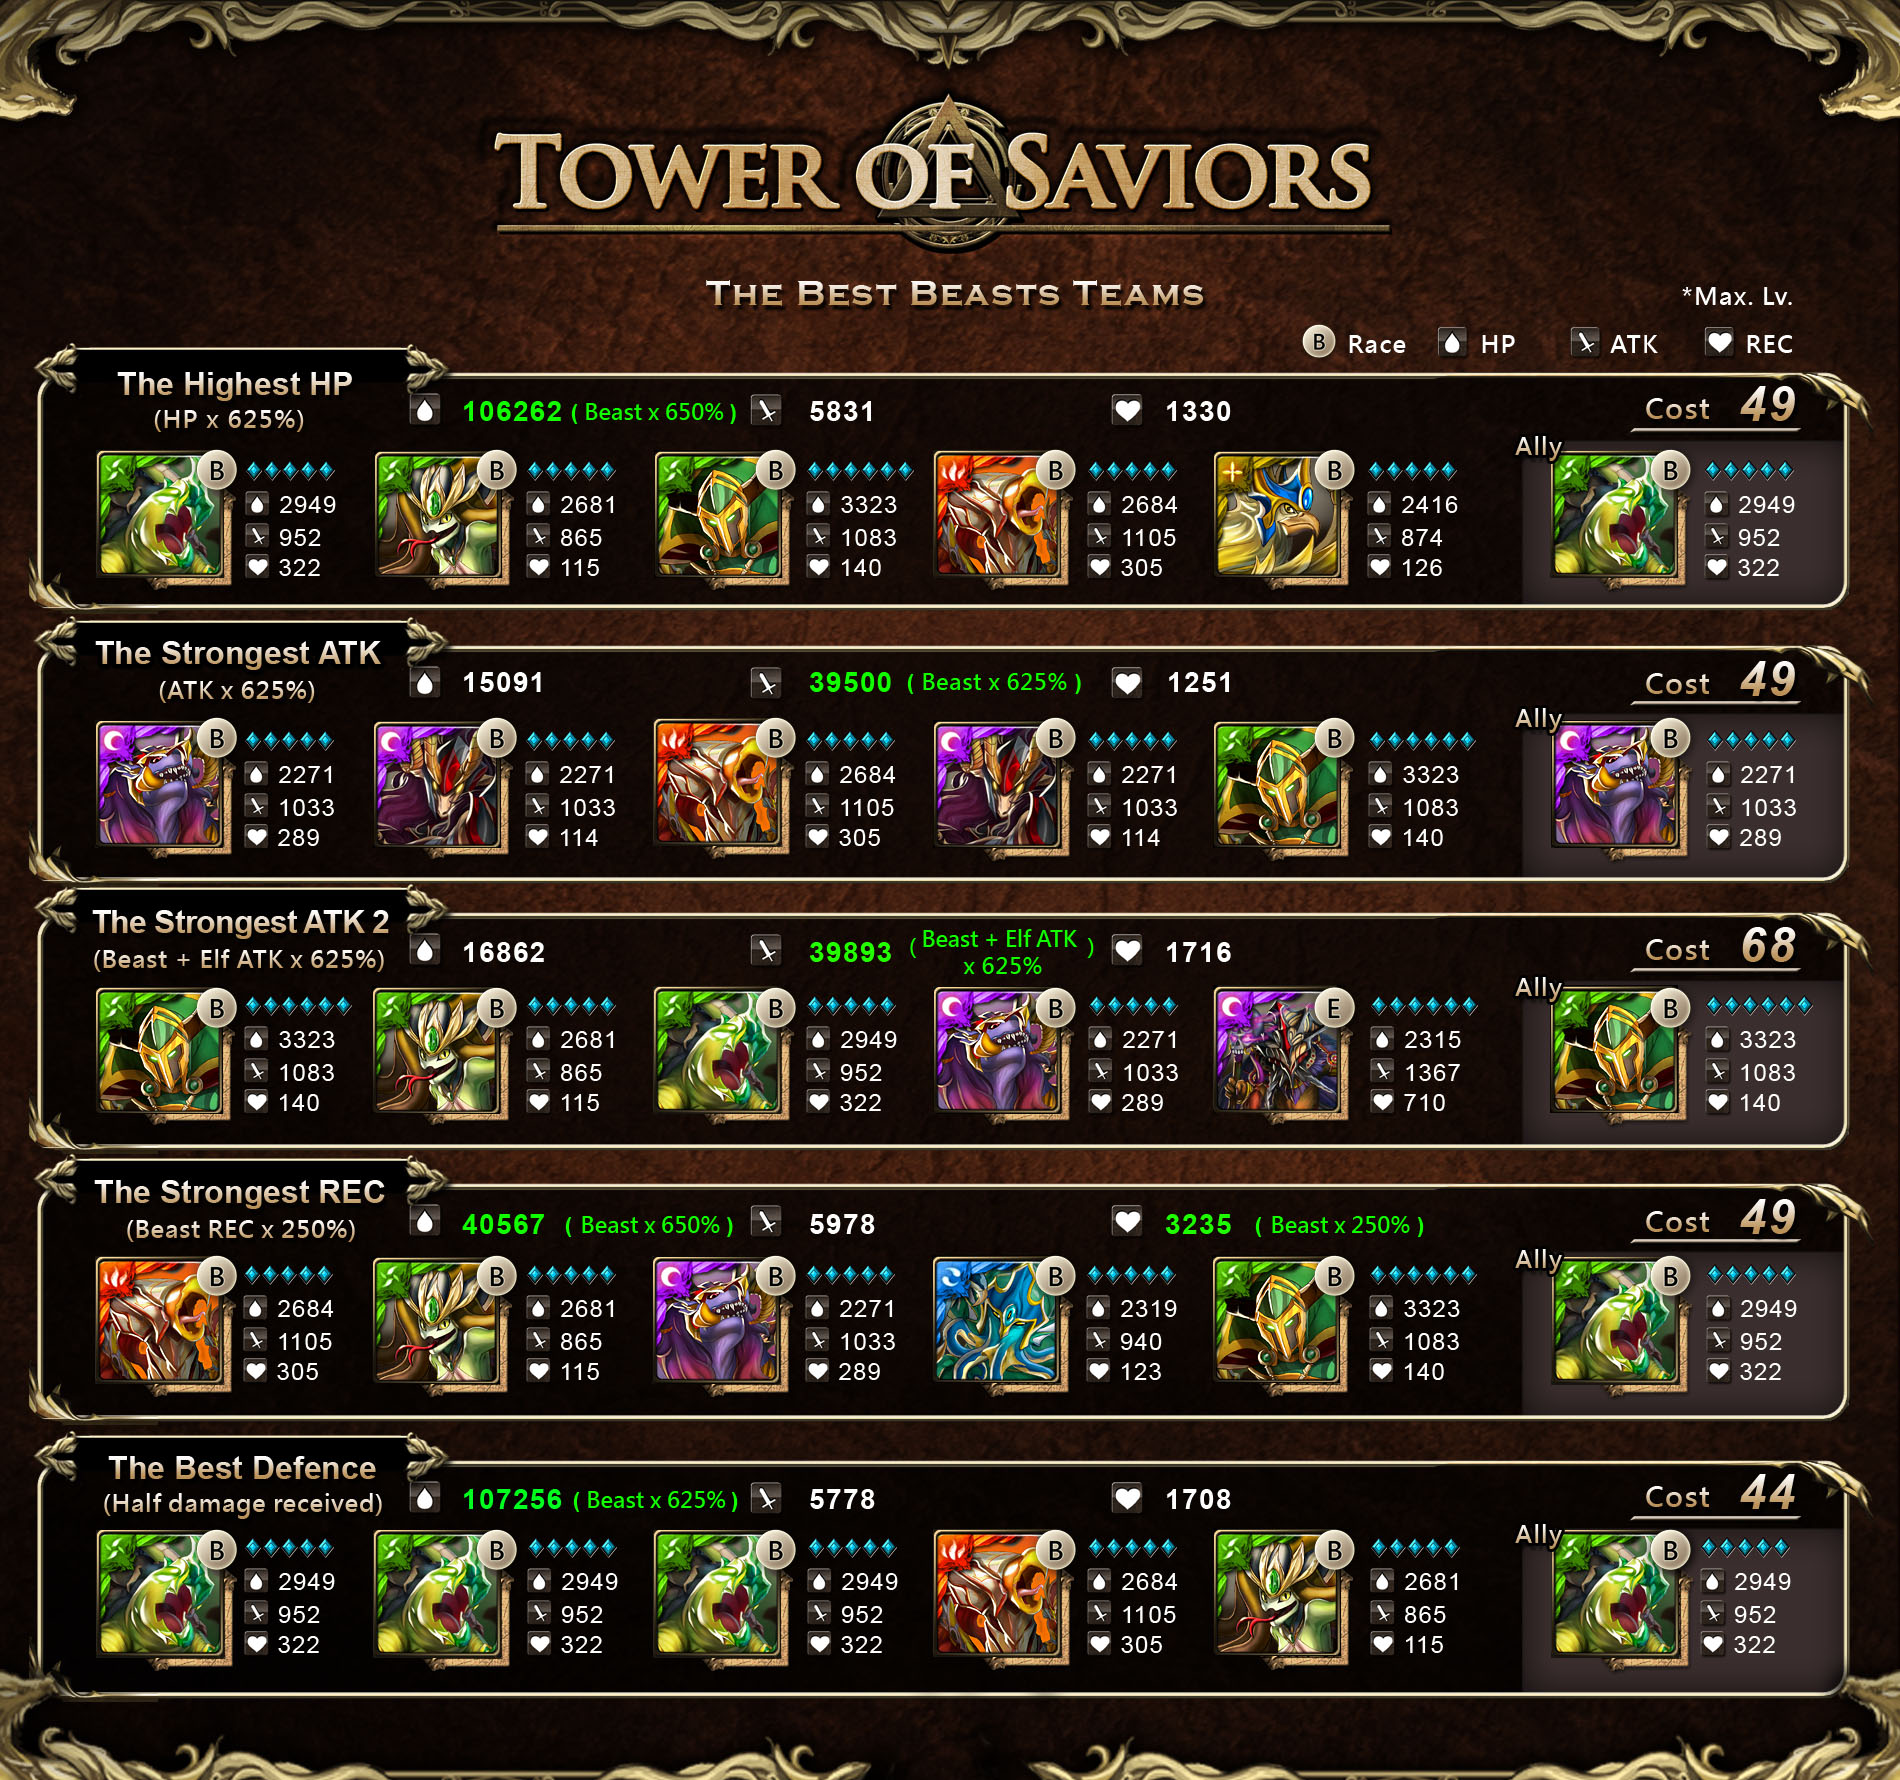 Tower of Saviors, the addictive and widely popular smash hit mobile